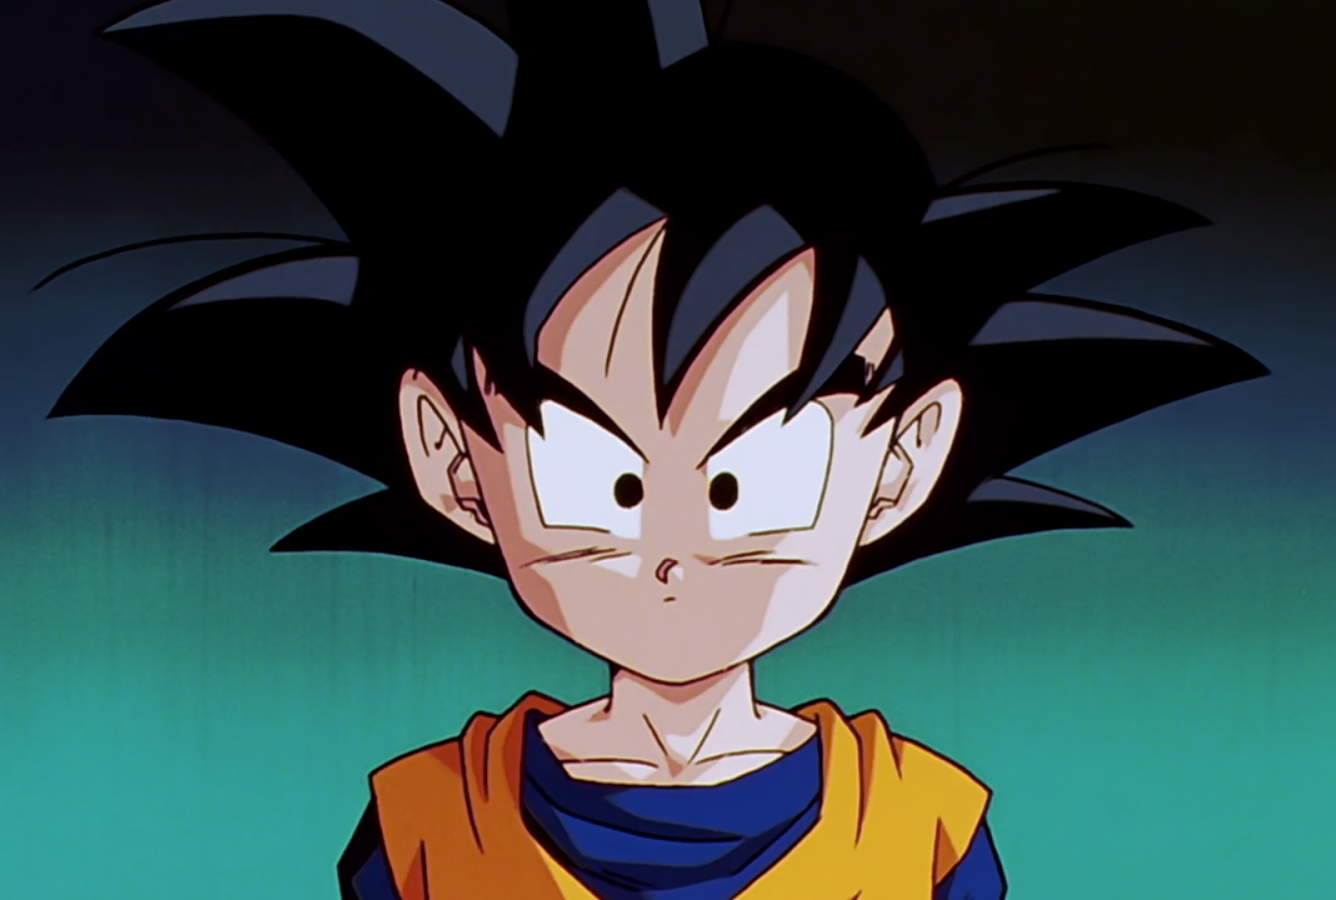 son goten dragon universe wiki fandom powered by wikia